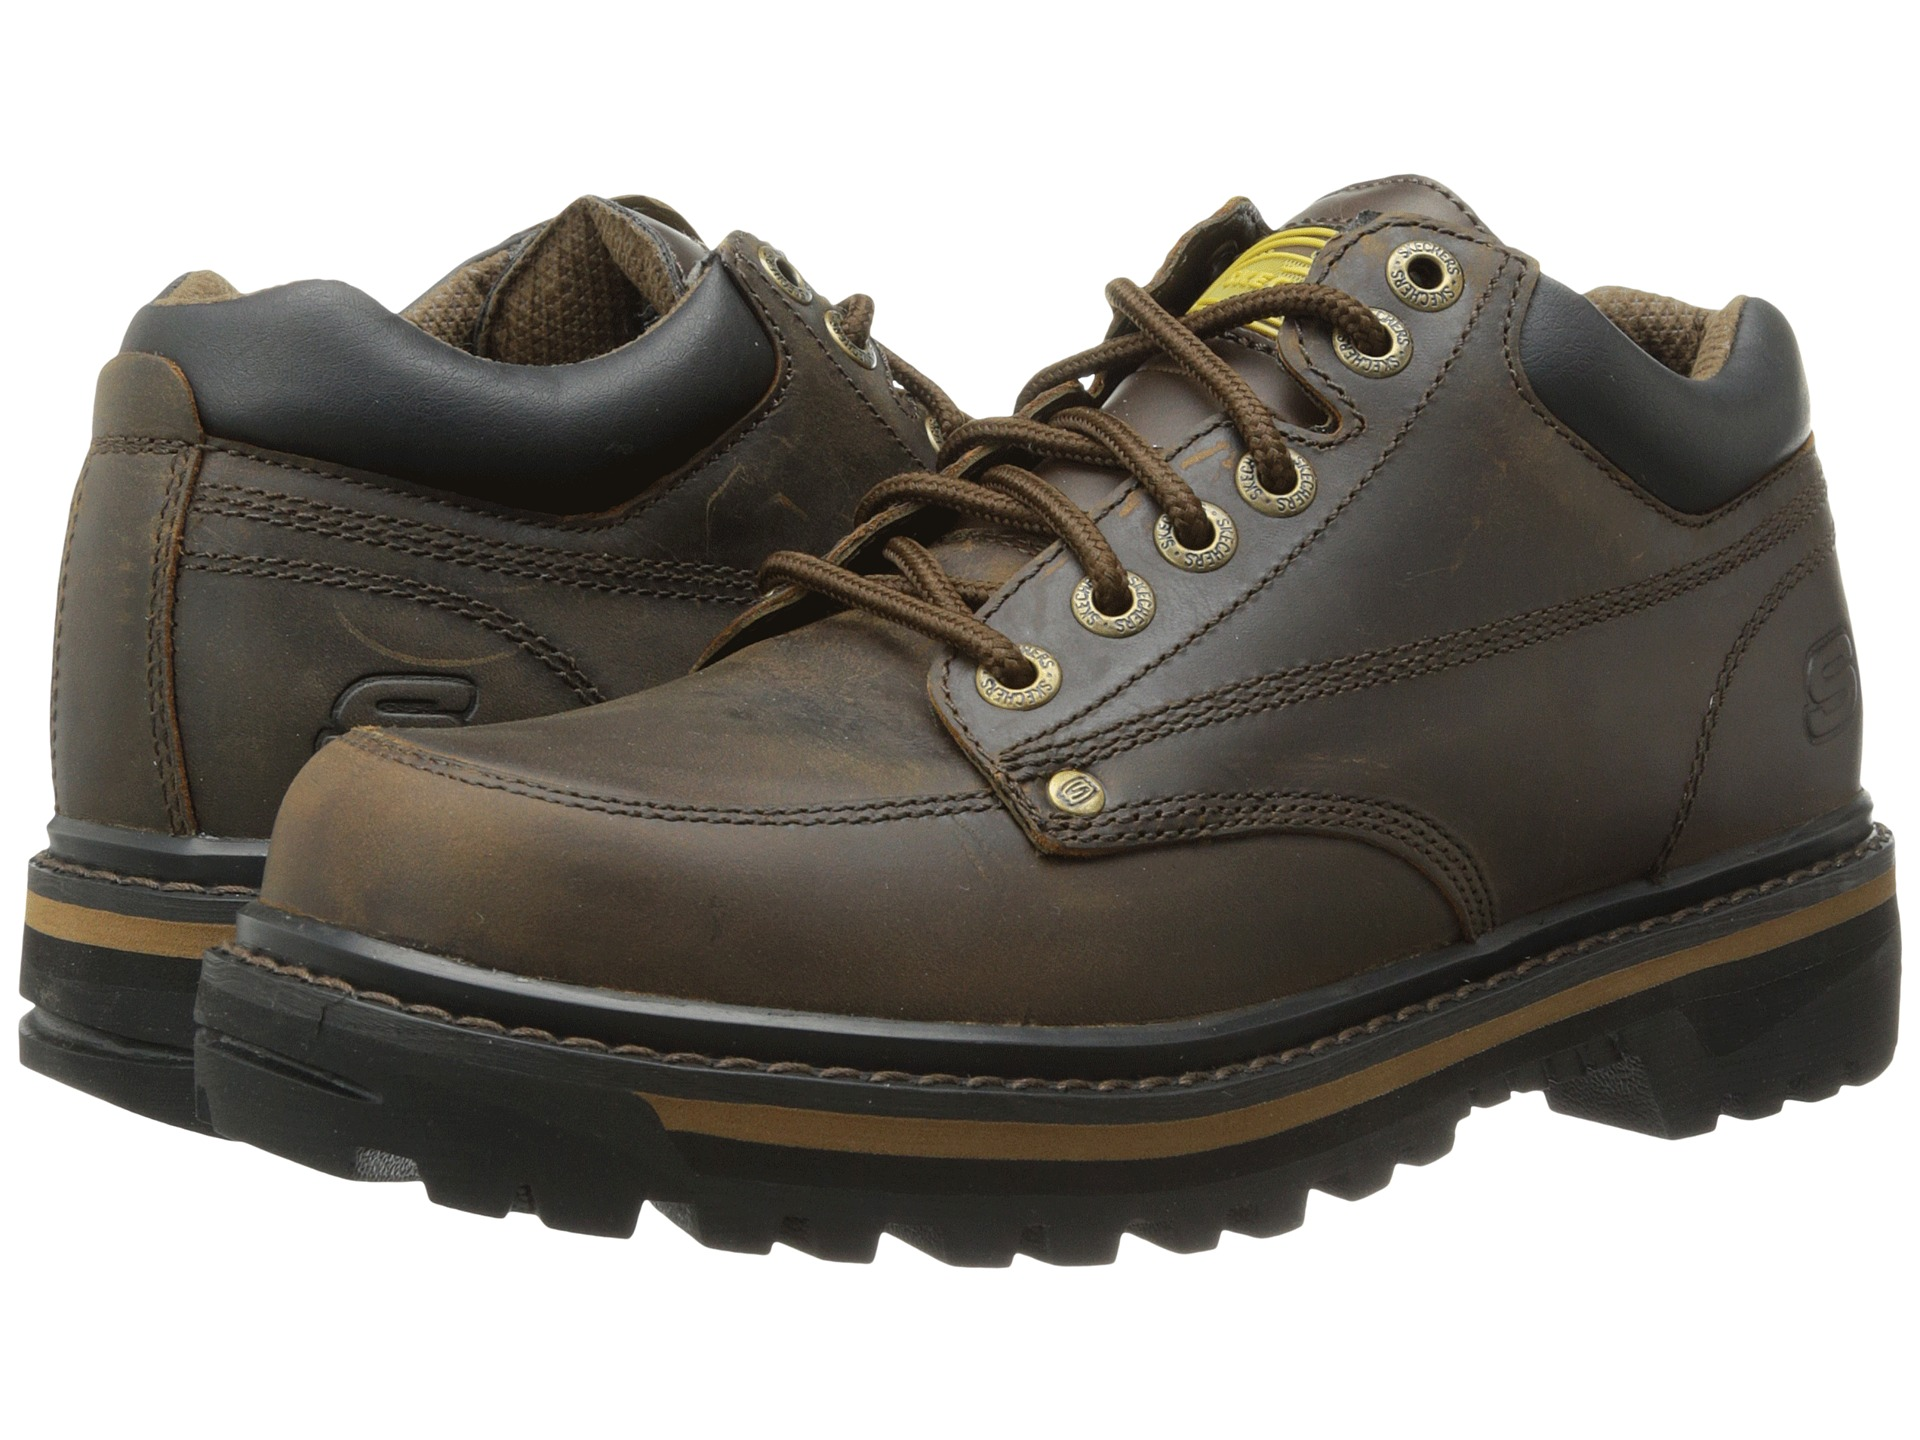 Zappos Winter Mens Running Shoes